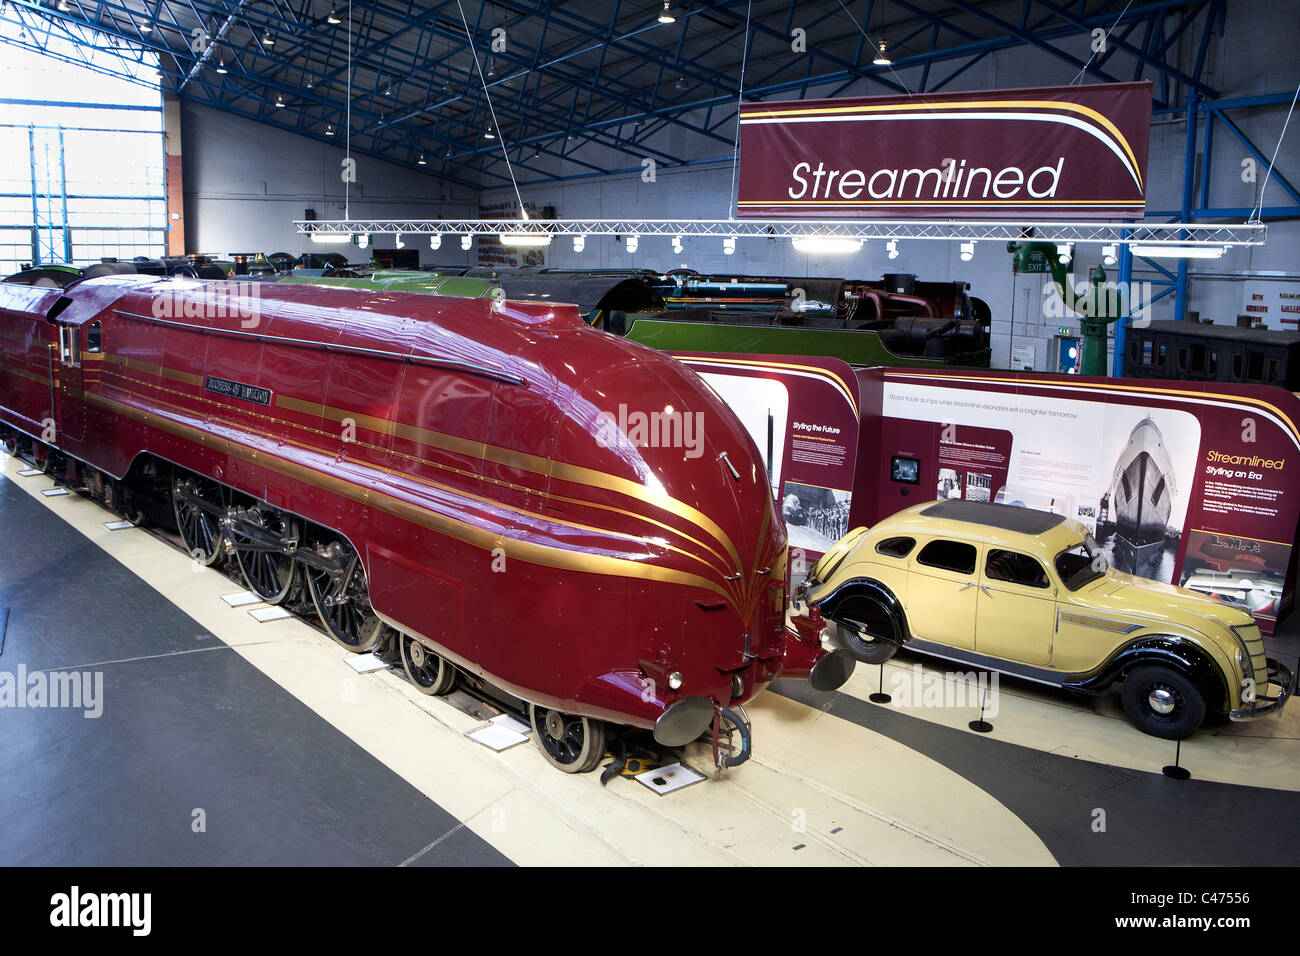 The Duchess of Hamilton preserved streamlined steam locomotive at the National Railway Museum in York - Stock Image